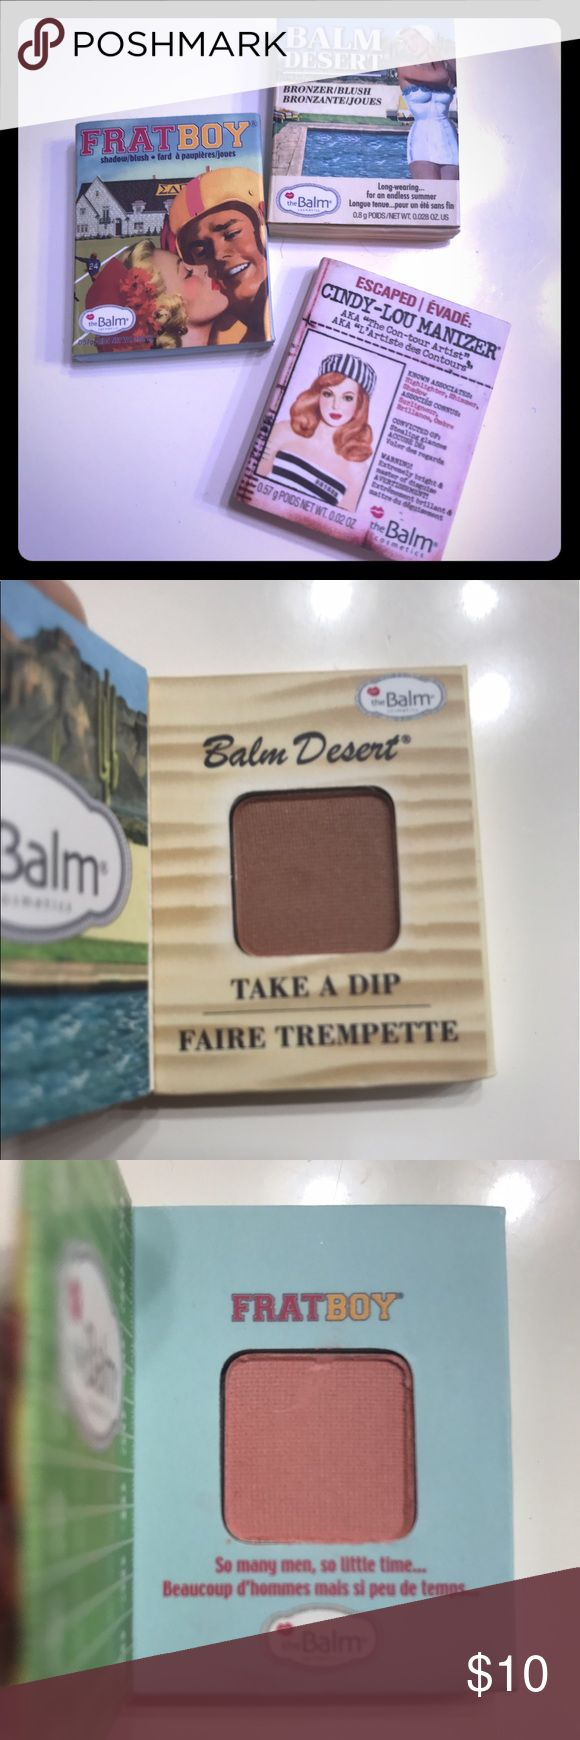 Bronzer, eyeshadow & highlighter BUNDLE Three very cute vintage boxes from The Balm  * BALM DESERT - bronzer * FRAT BOY -eyeshadow/blush * CINDY-LOU MANIZER -contour, shadow, highlighter Makeup